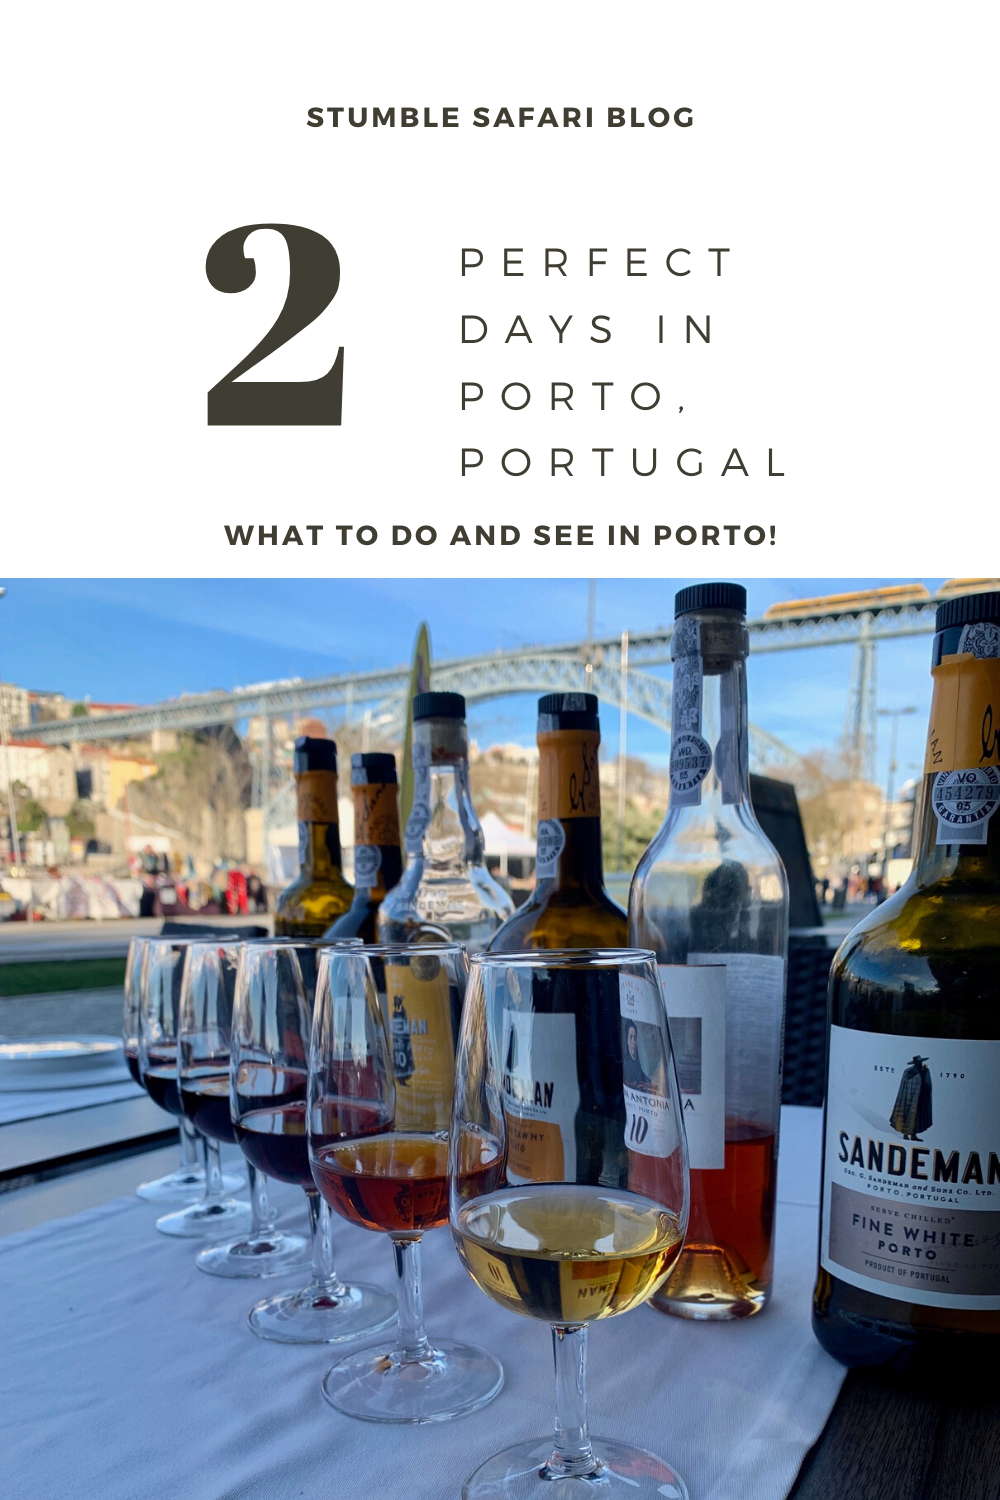 Porto, Portugal is home to rich, sweet port wine, stunning views, and incredible food. This small Portuguese town has so much to offer travelers, especially those who love wine and architecture! Here's how to spend 2 perfect days in Porto! #Porto #portugal #portoportugal #europe #europetravel #portugaltravel #portwine #port #foodietravel #winelover #wine